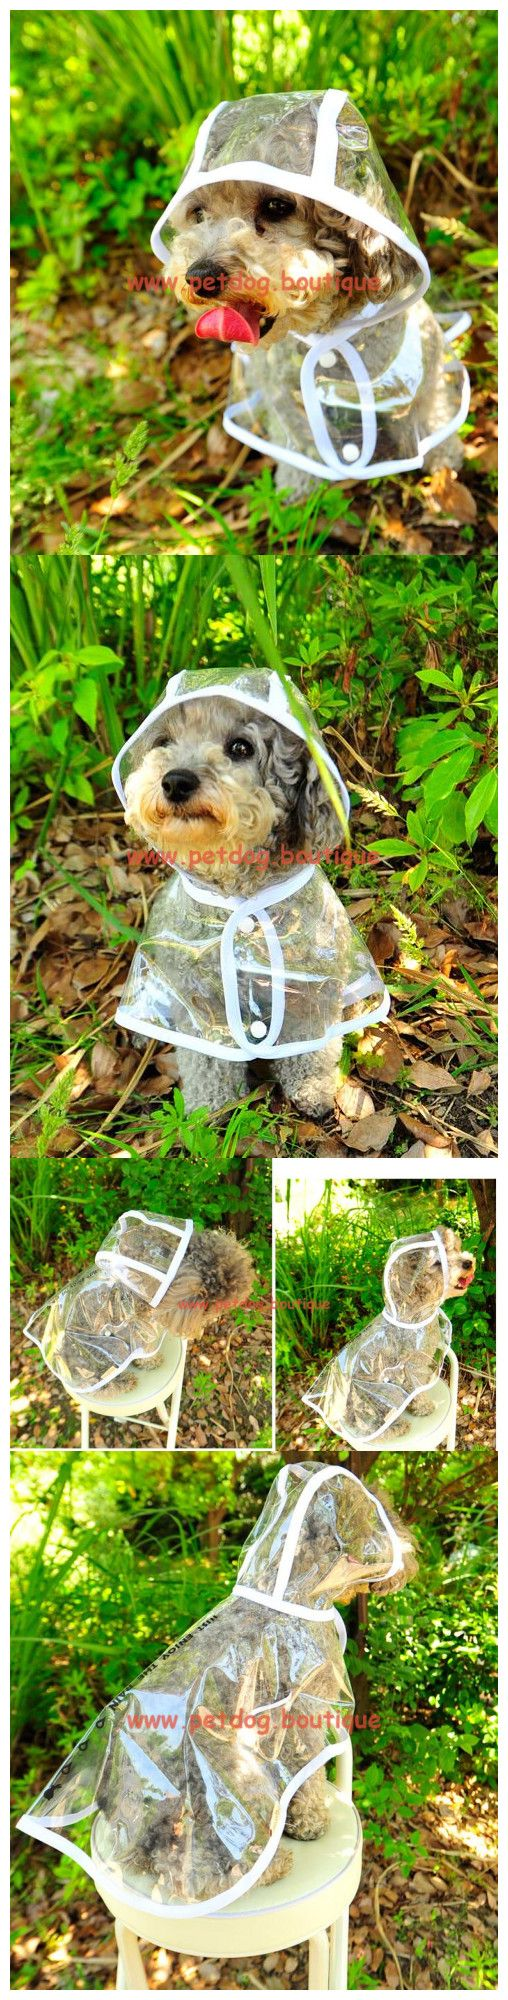 $13.80 Small Dogs Clothes and Accessories Rain Coat